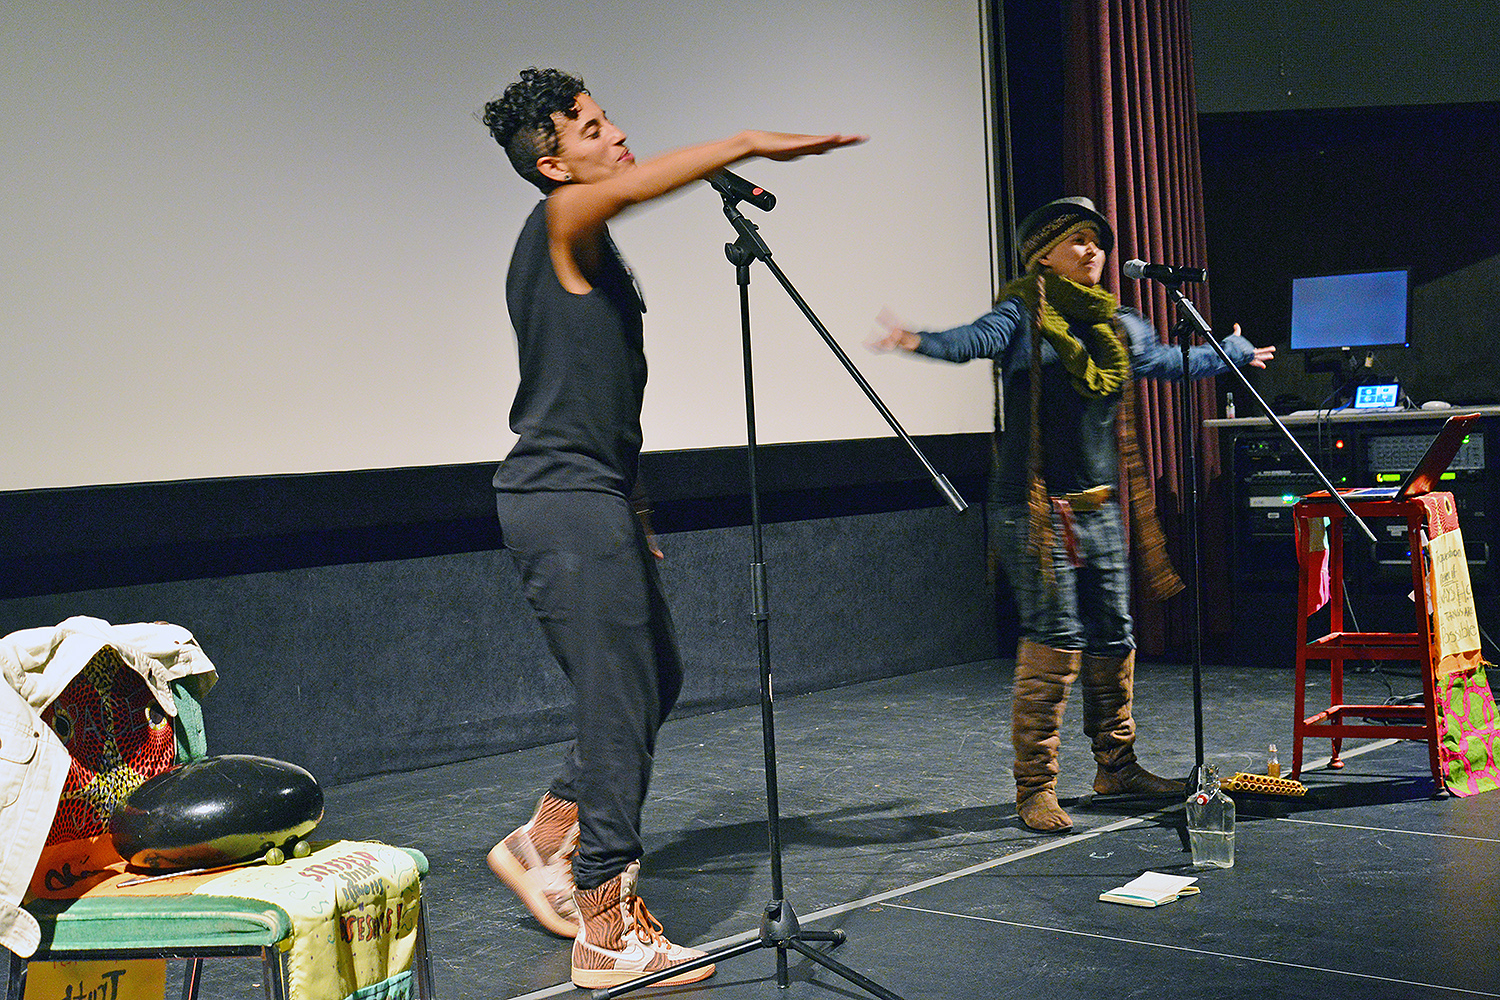 A performance, which focuses on infusing the movement for justice with healing and imagination, audience members witnessed dual-voice poems, unconventional hip hop, and multi-media theater, all combined and used to explore the diversity of the black experience.